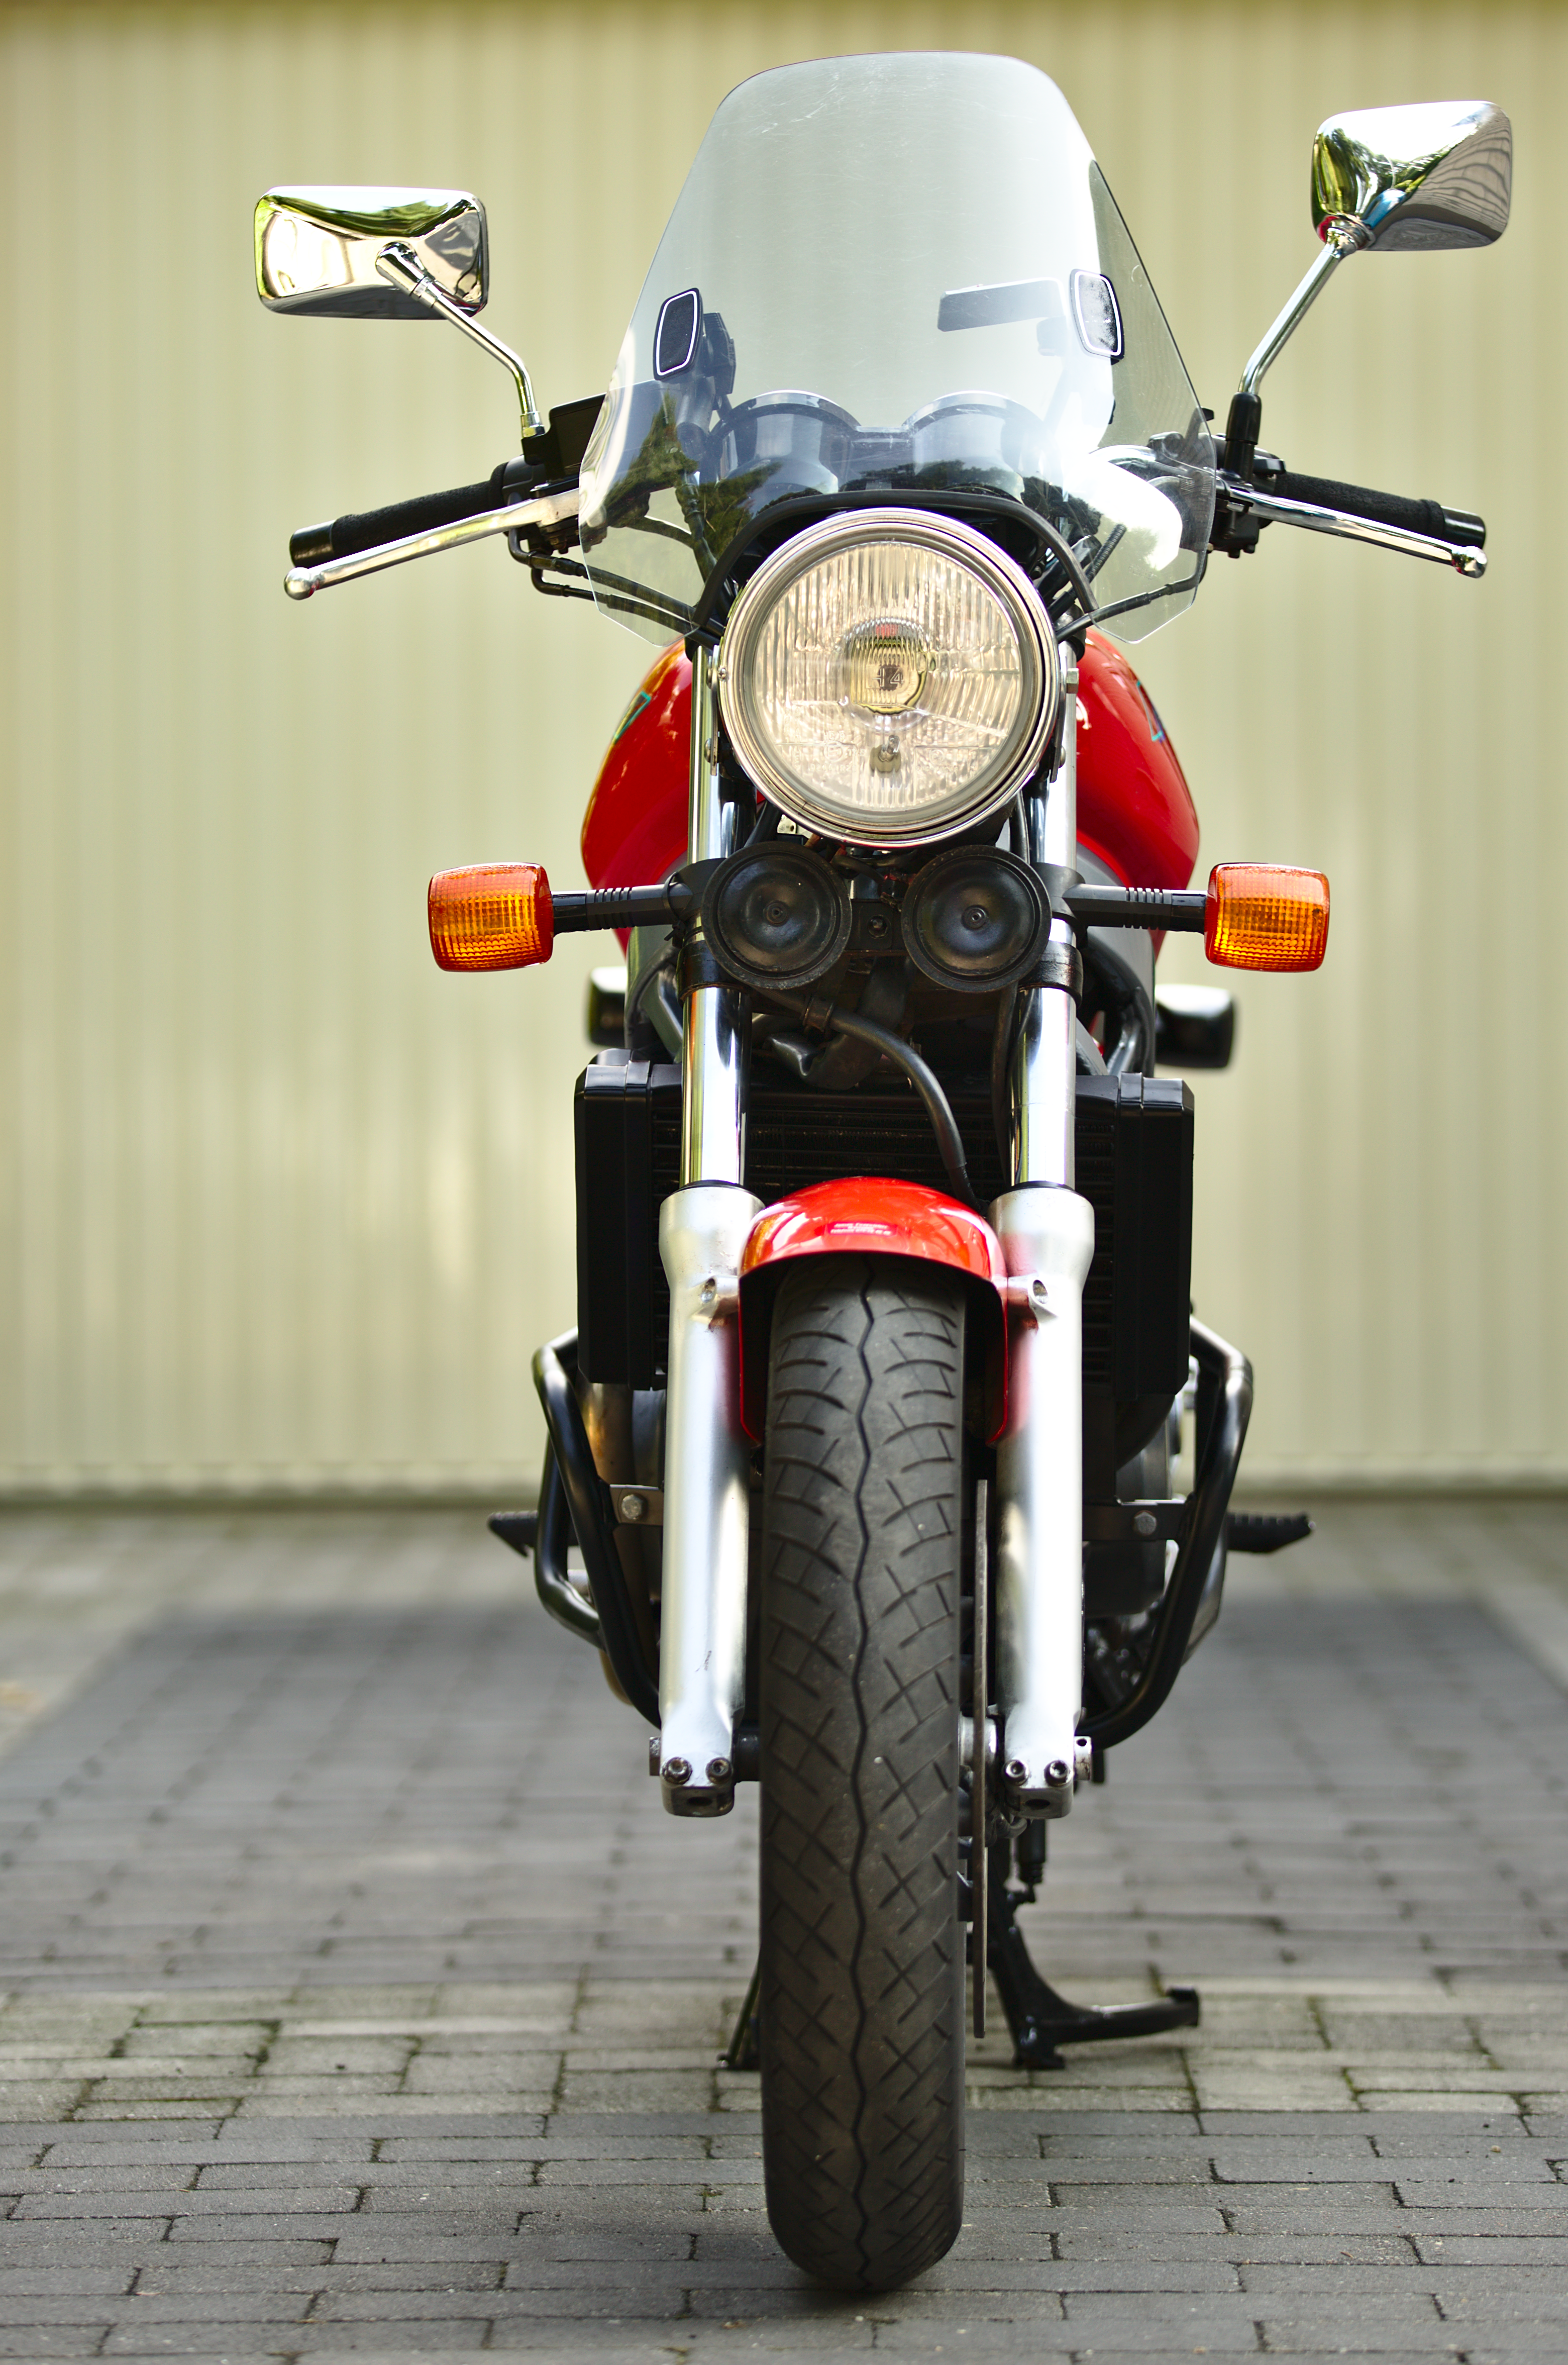 file:honda ntv650 motorcycle (1993) front view + windshield